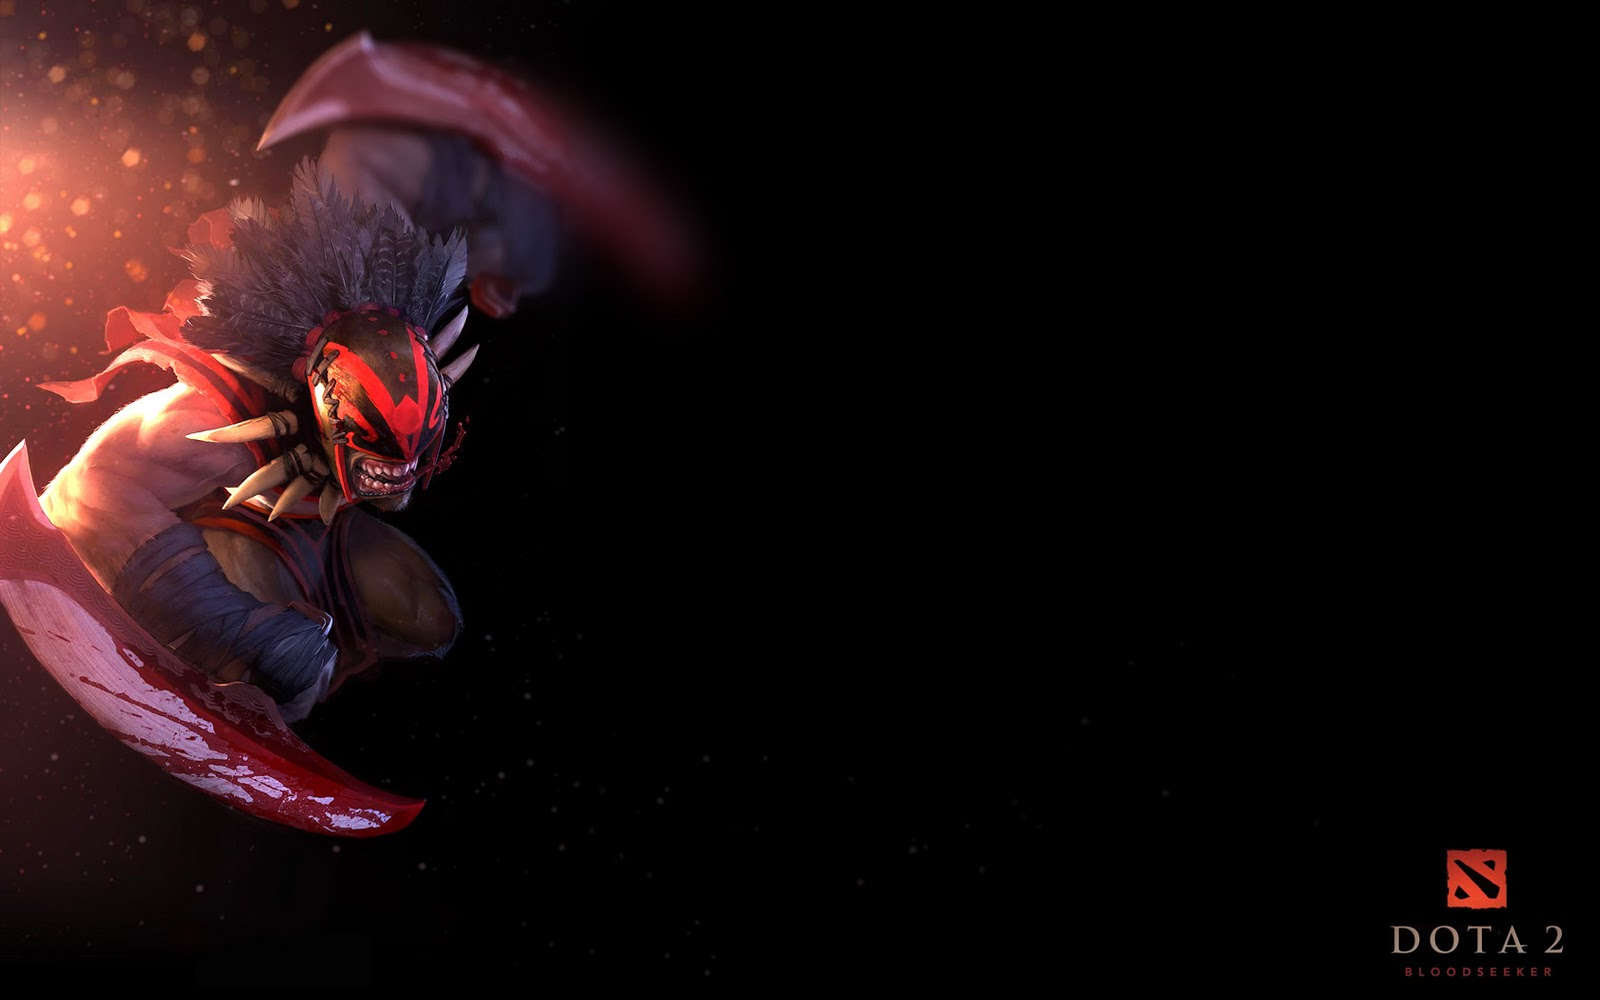 dota 2 wallpapers september 2011